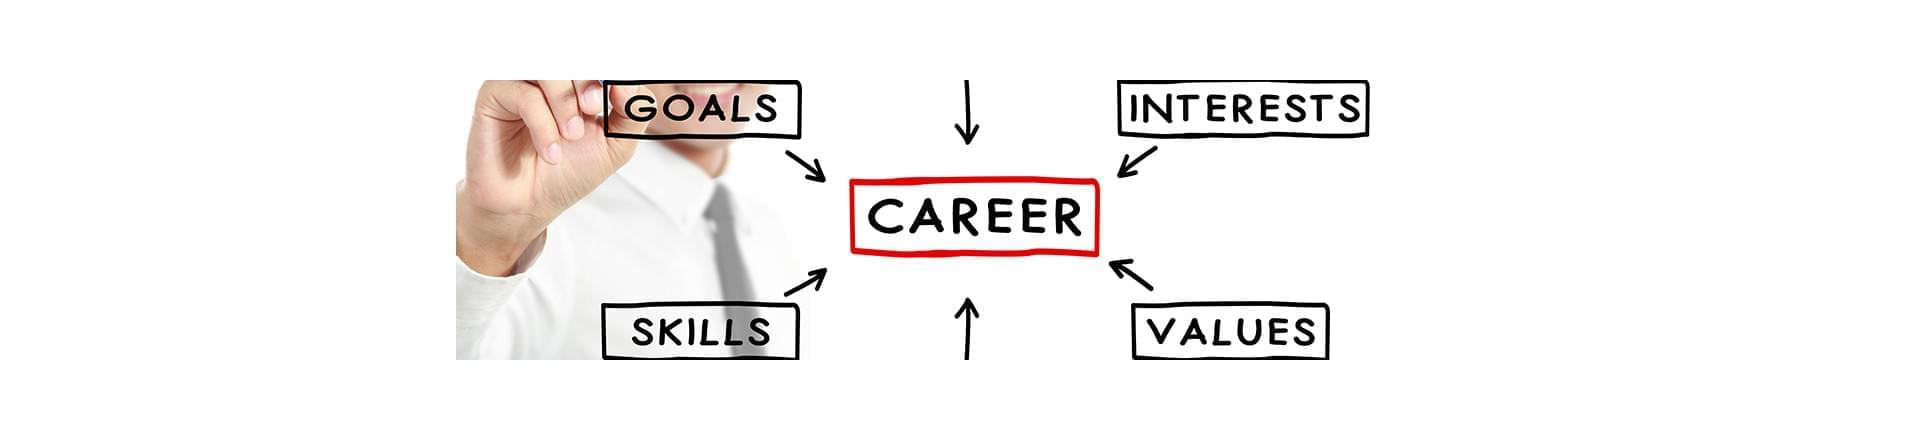 Spider Diagram with Careers in the middle and arrows pointing towards it with words: Goals, Interests, Values and Skills